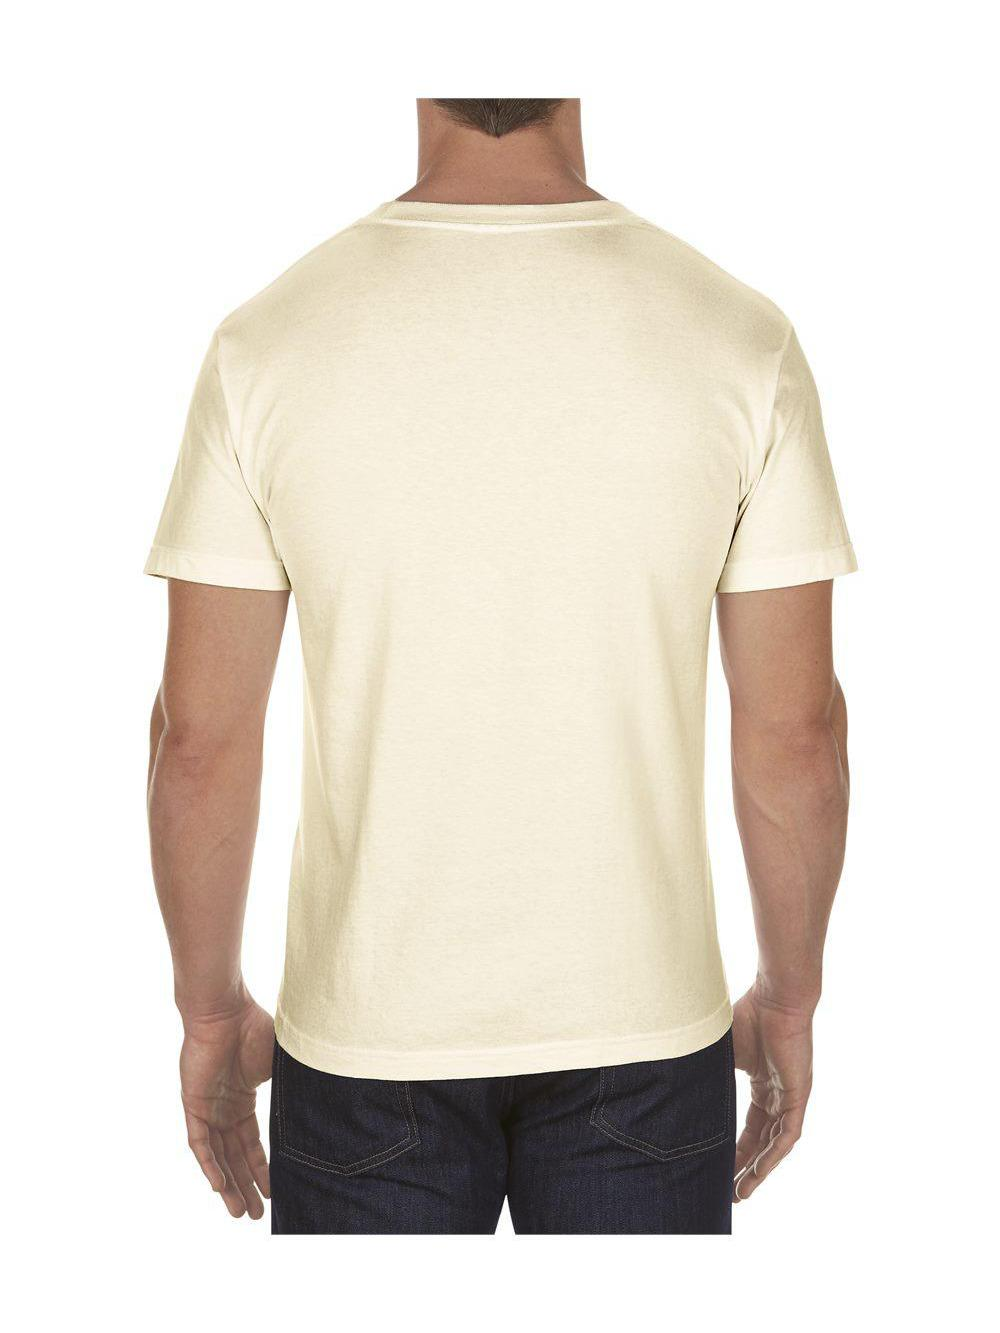 ALSTYLE-Classic-T-Shirt-1301 thumbnail 36